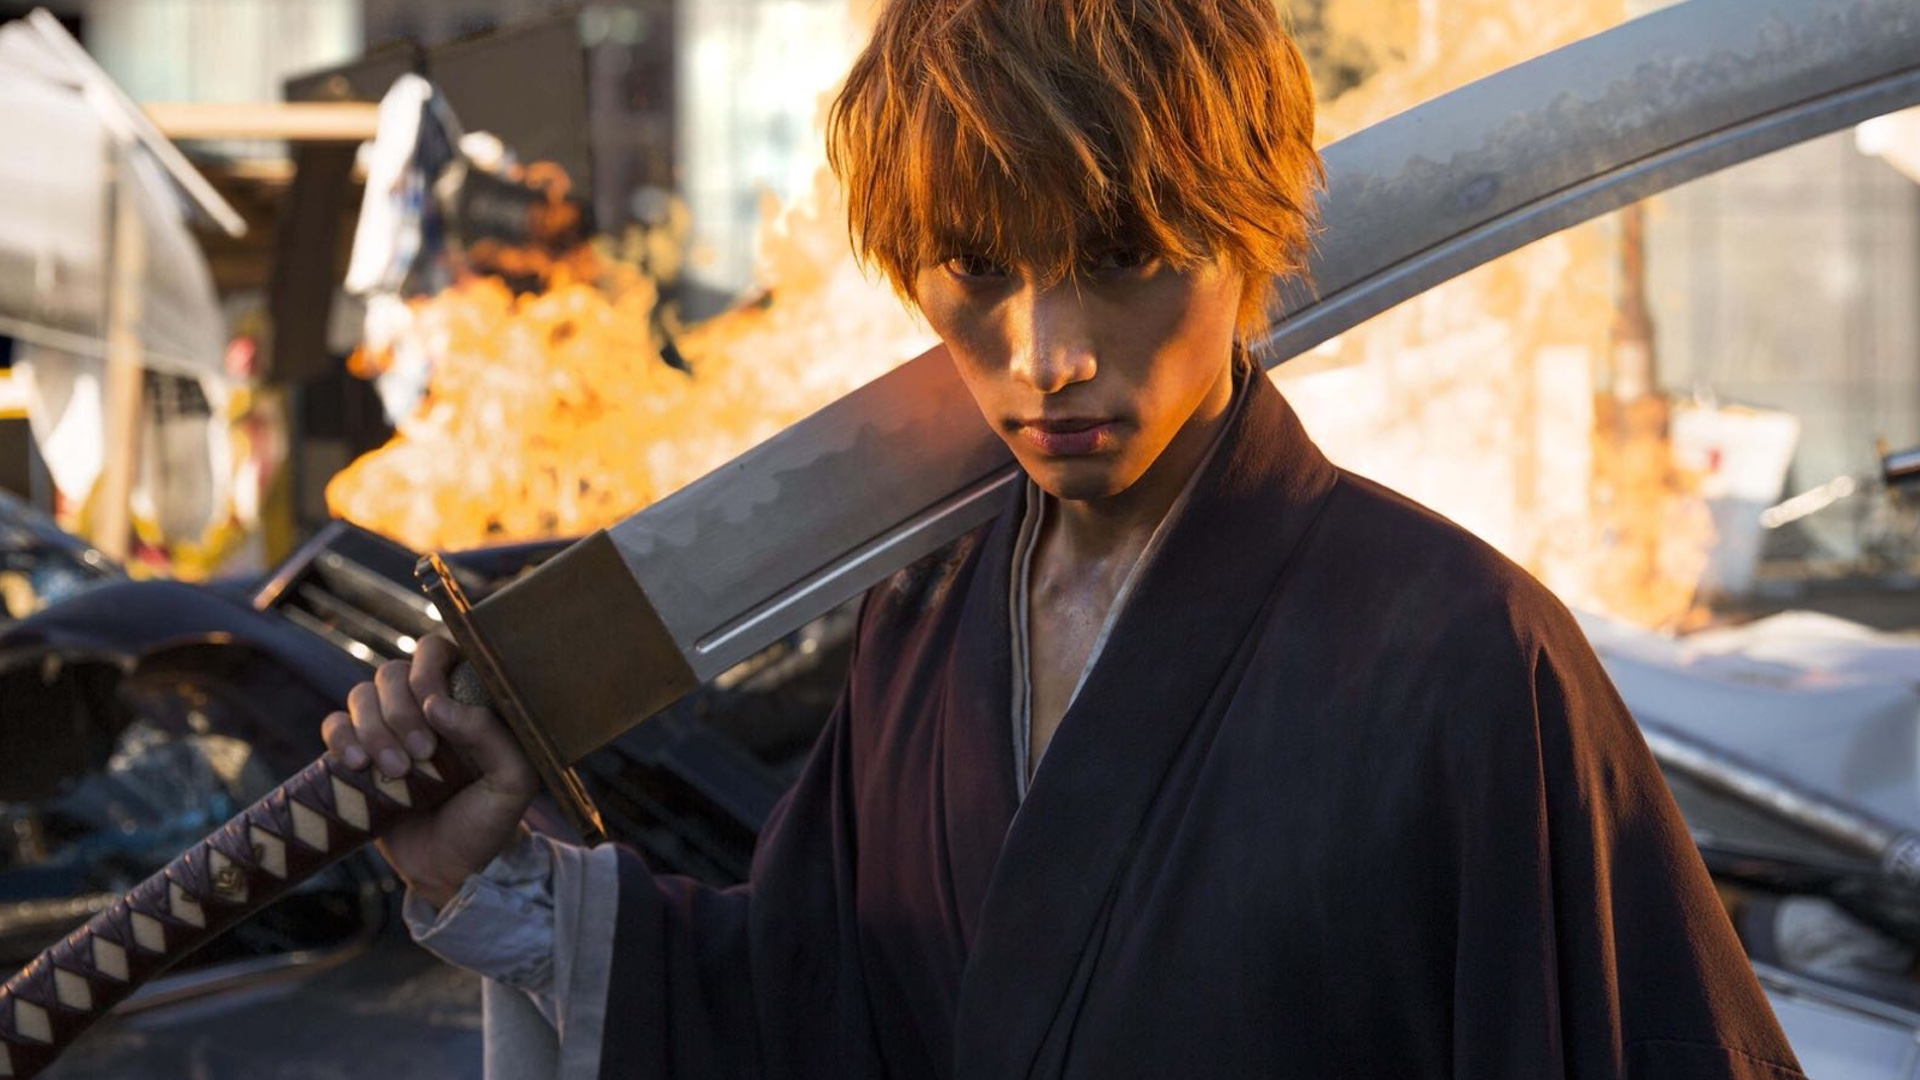 bleach-may-get-a-live-action-film-trilogy-social.jpg